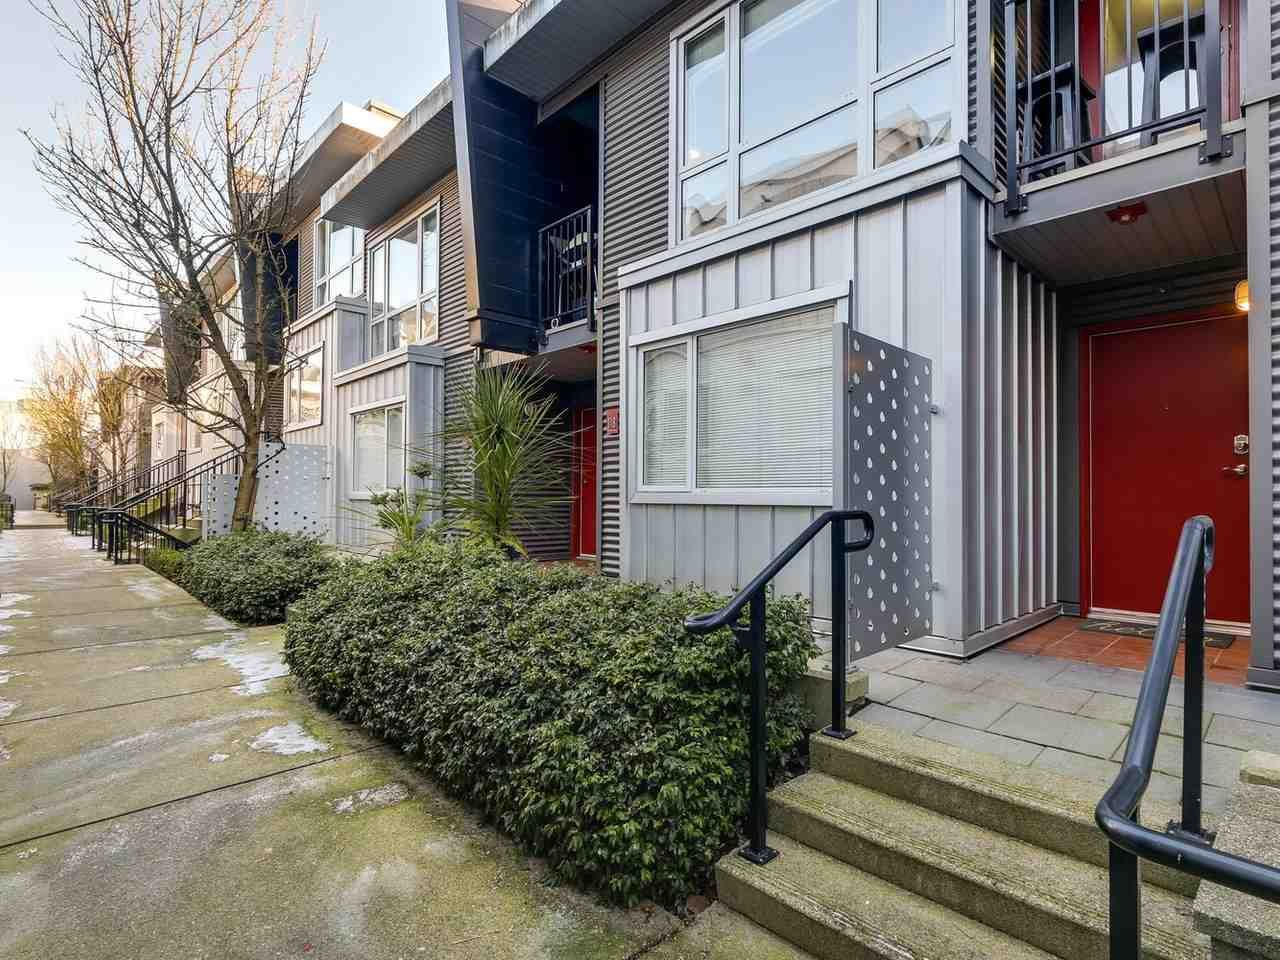 Photo 19: Photos: 119 672 W 6TH AVENUE in Vancouver: Fairview VW Townhouse for sale (Vancouver West)  : MLS®# R2401186